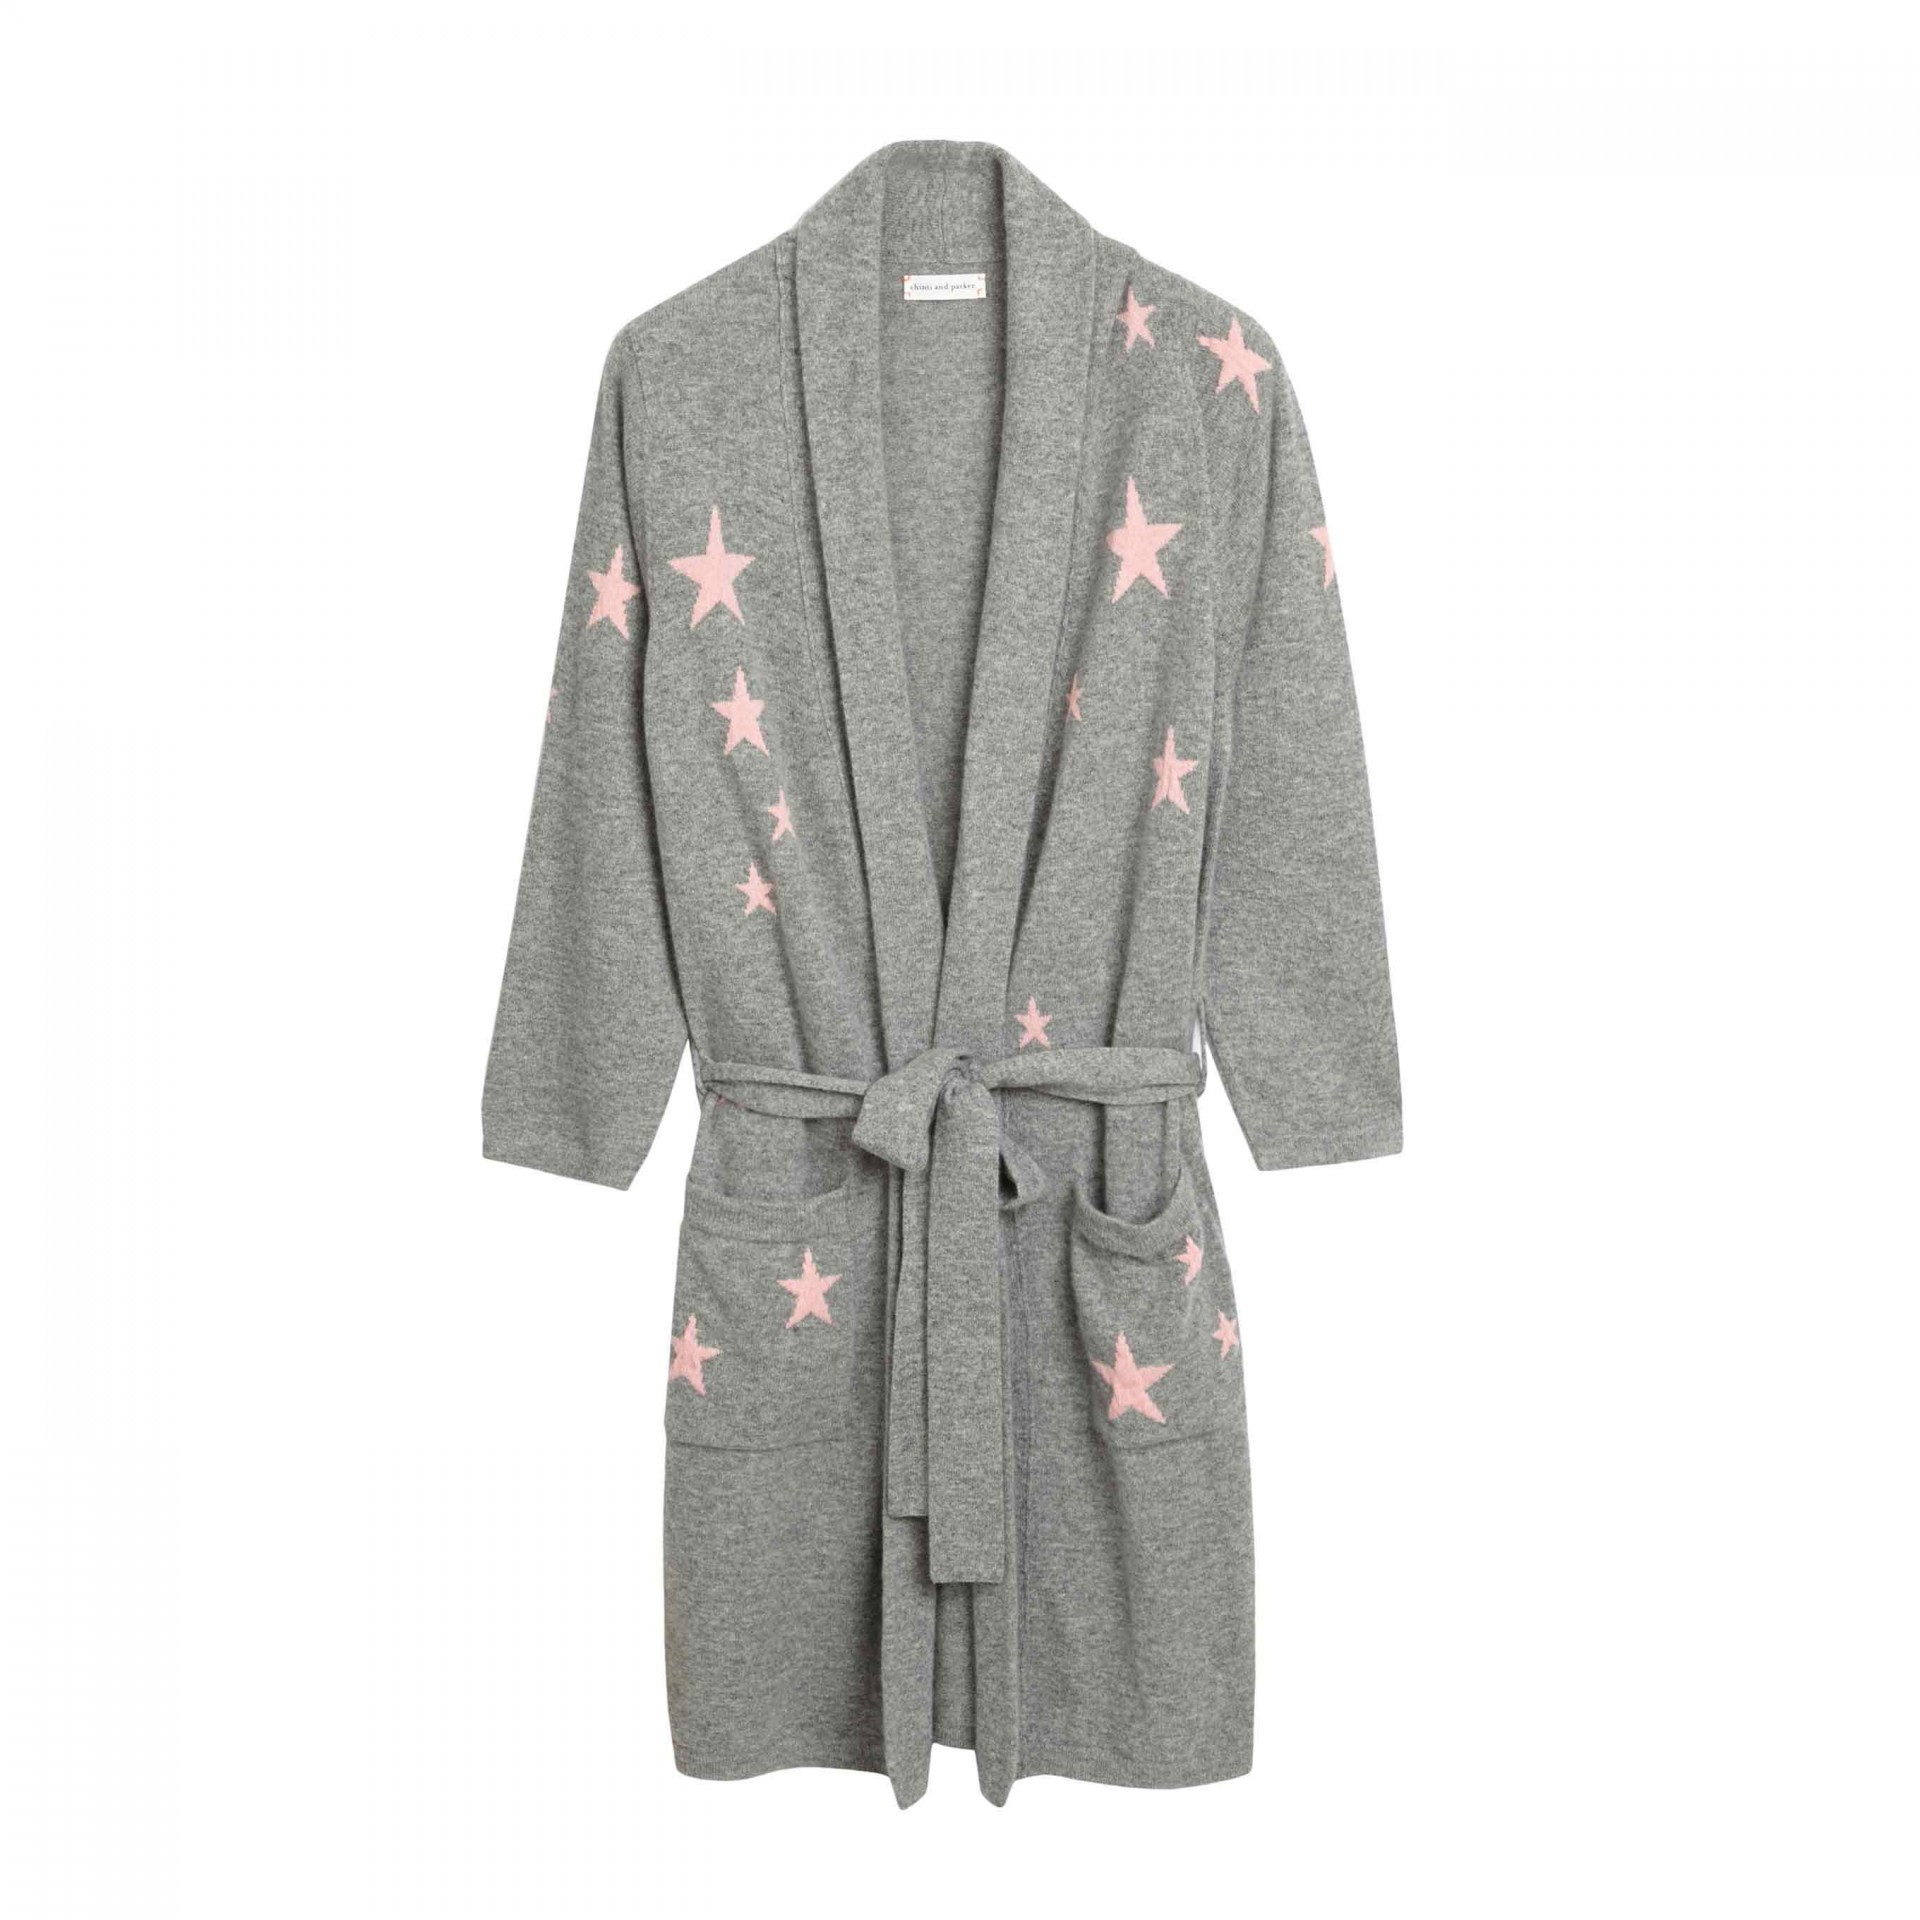 Short Star Dressing Gown, £595, Chinti & Parker. www.chintiandparker.com